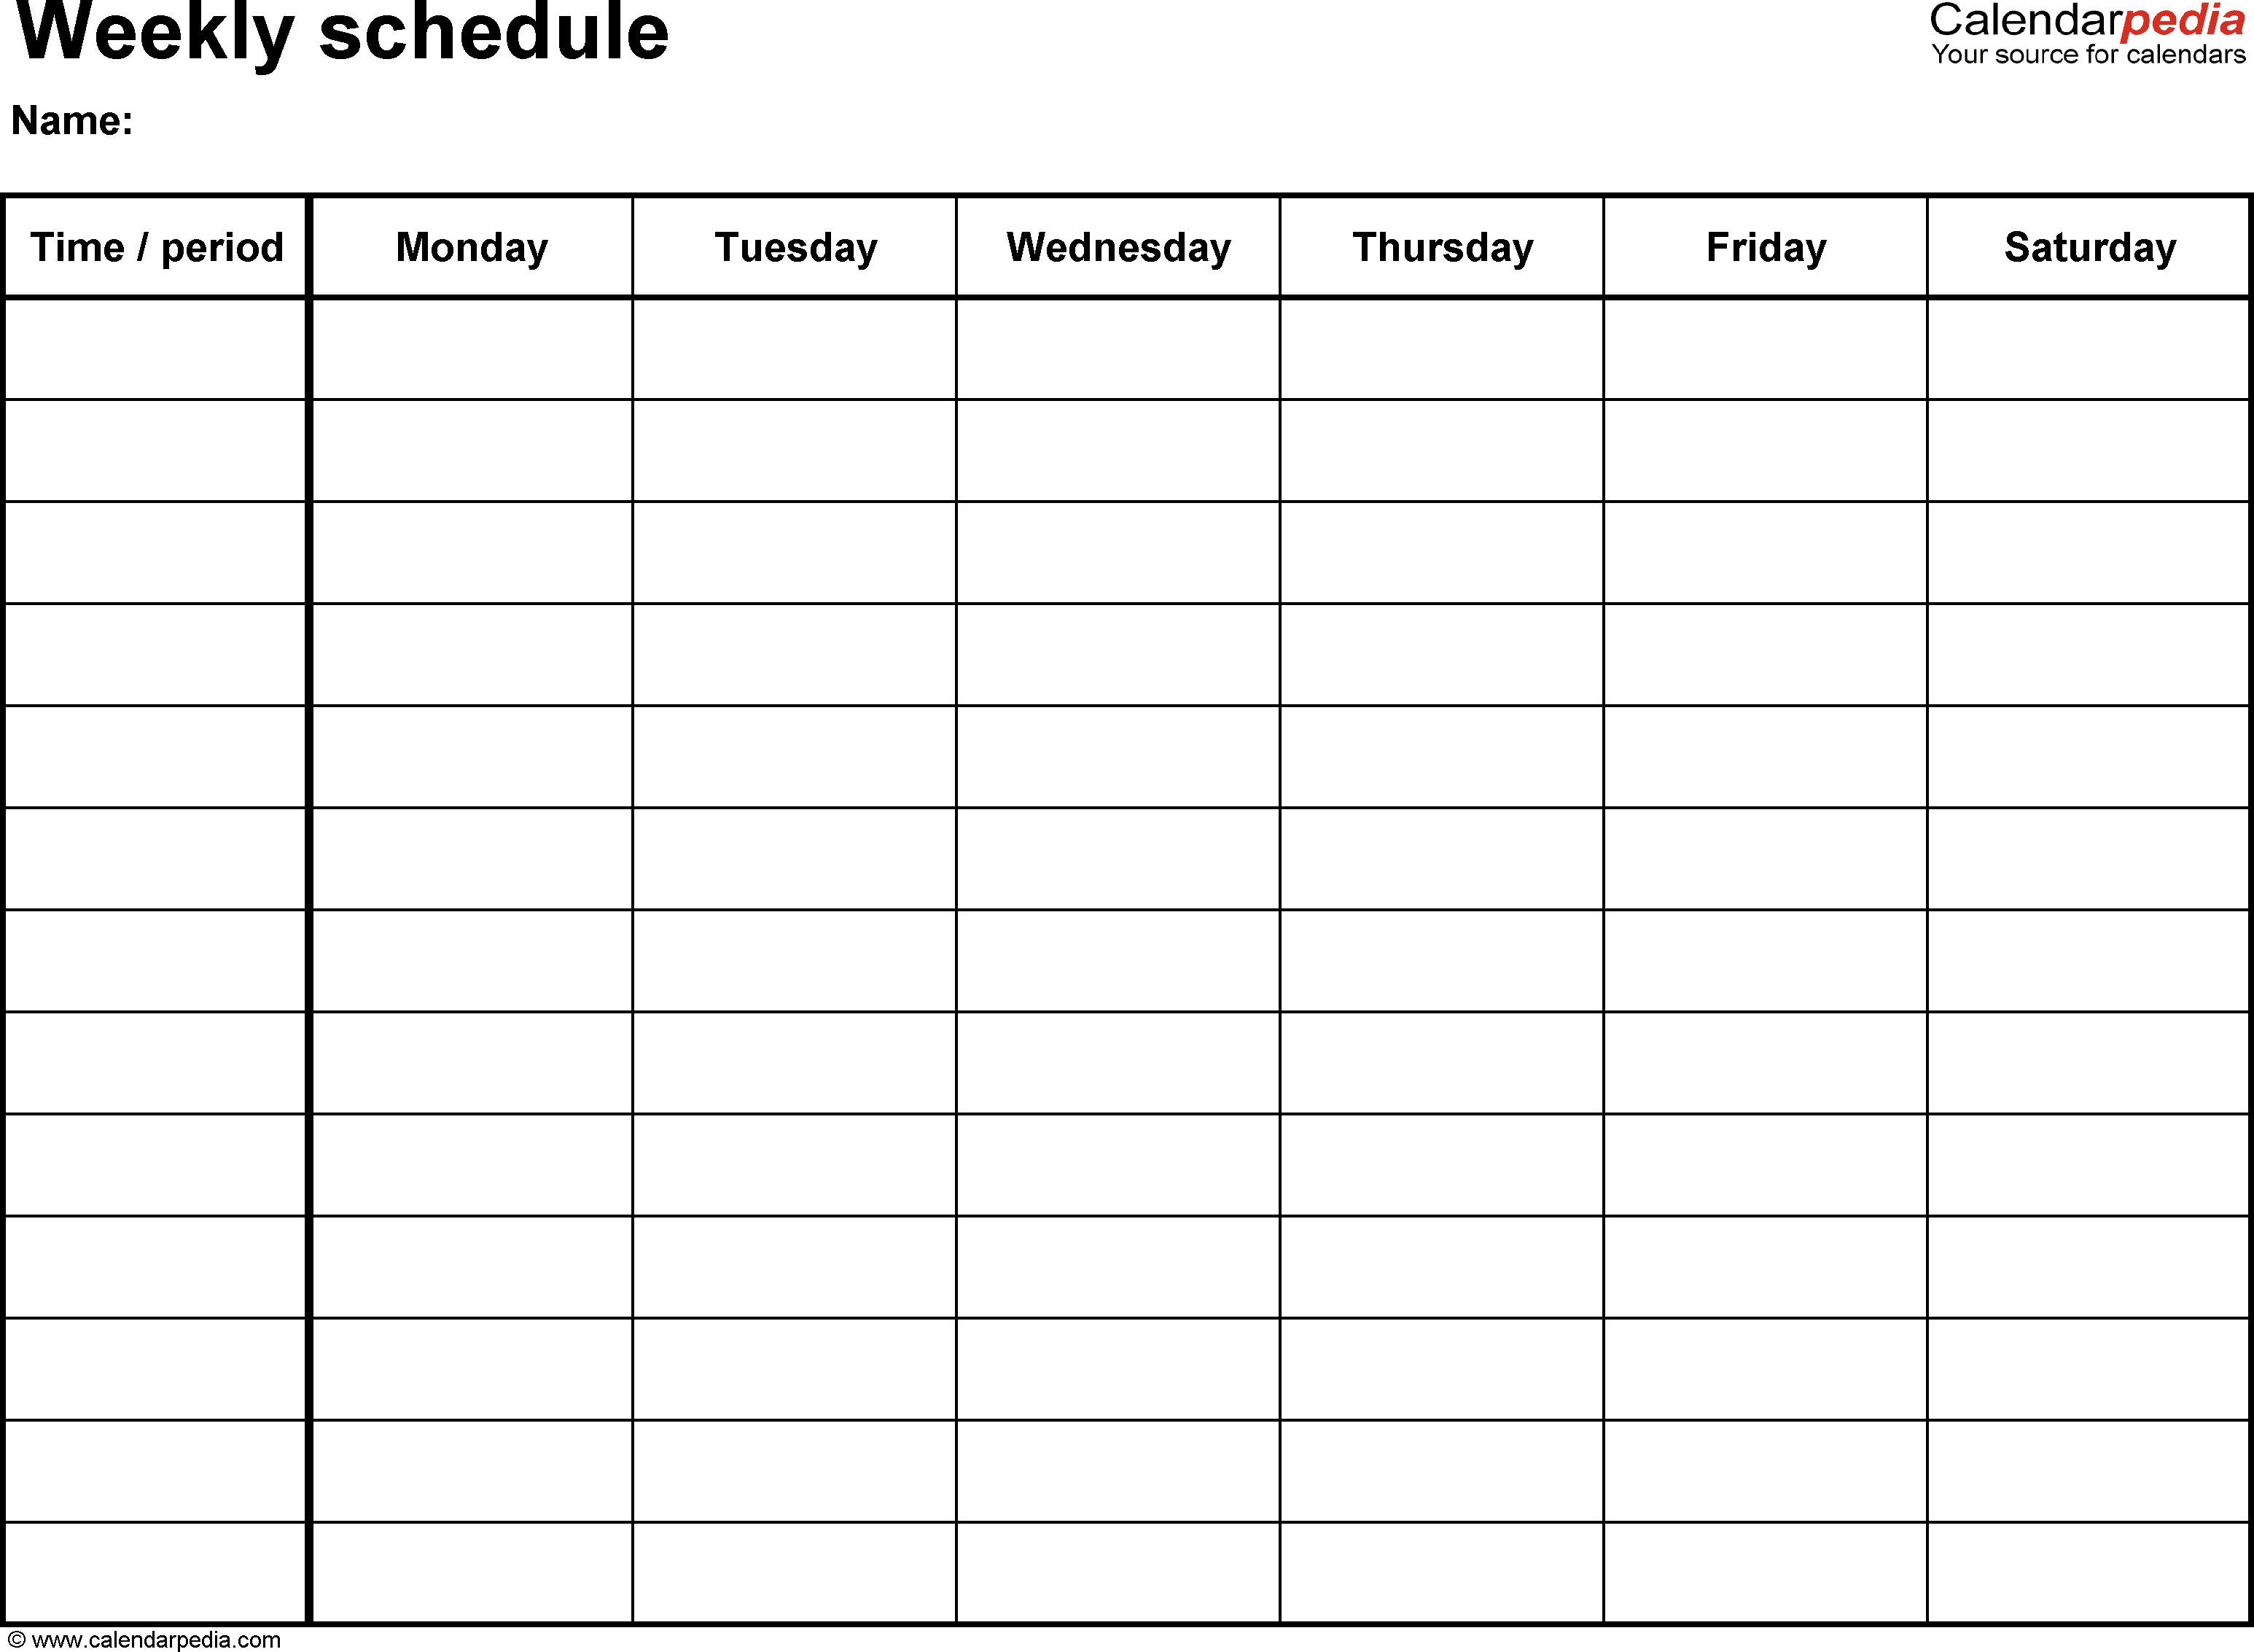 Free Weekly Schedule Templates For Word - 18 Templates with regard to Fill In Blank Weekly Calendar Templates